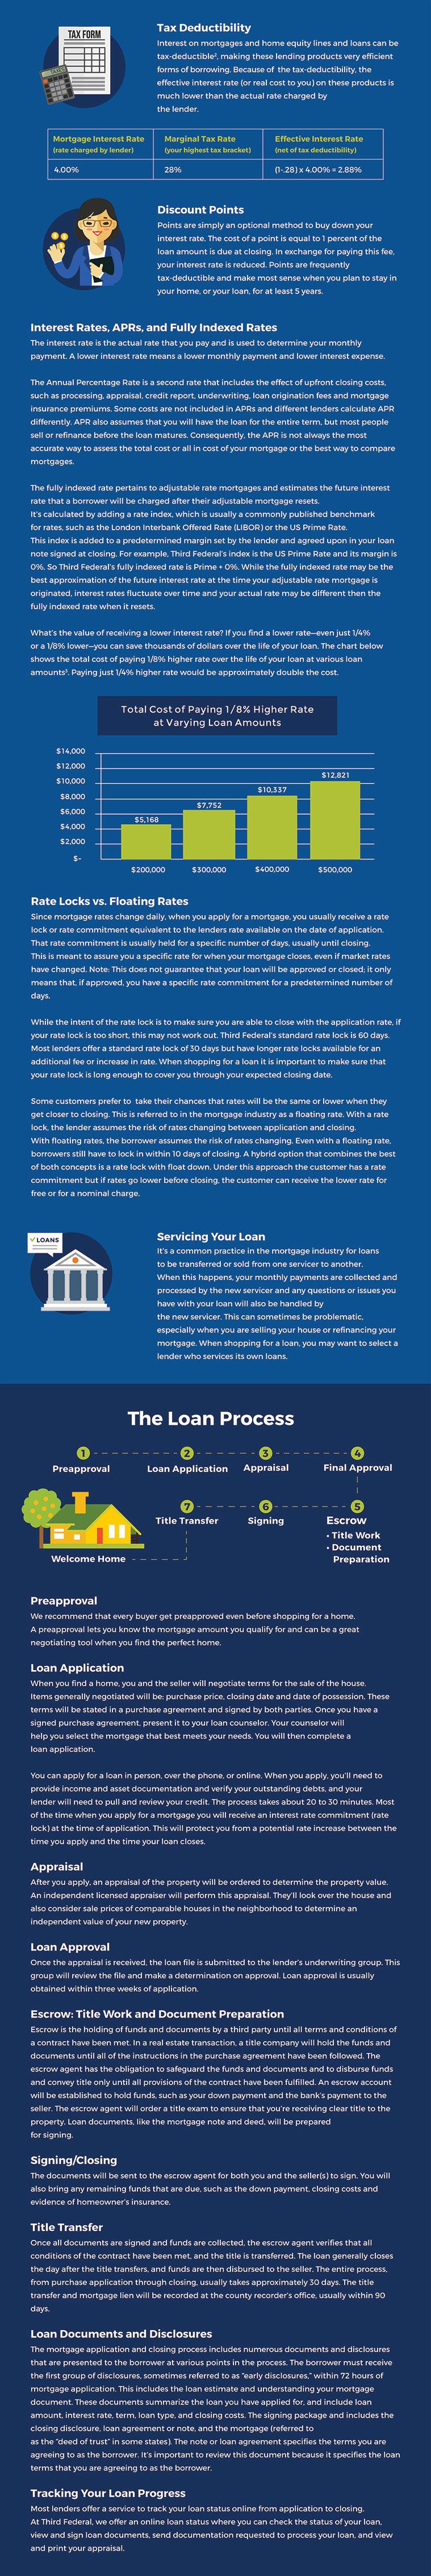 mortgage-purchase-guide-3